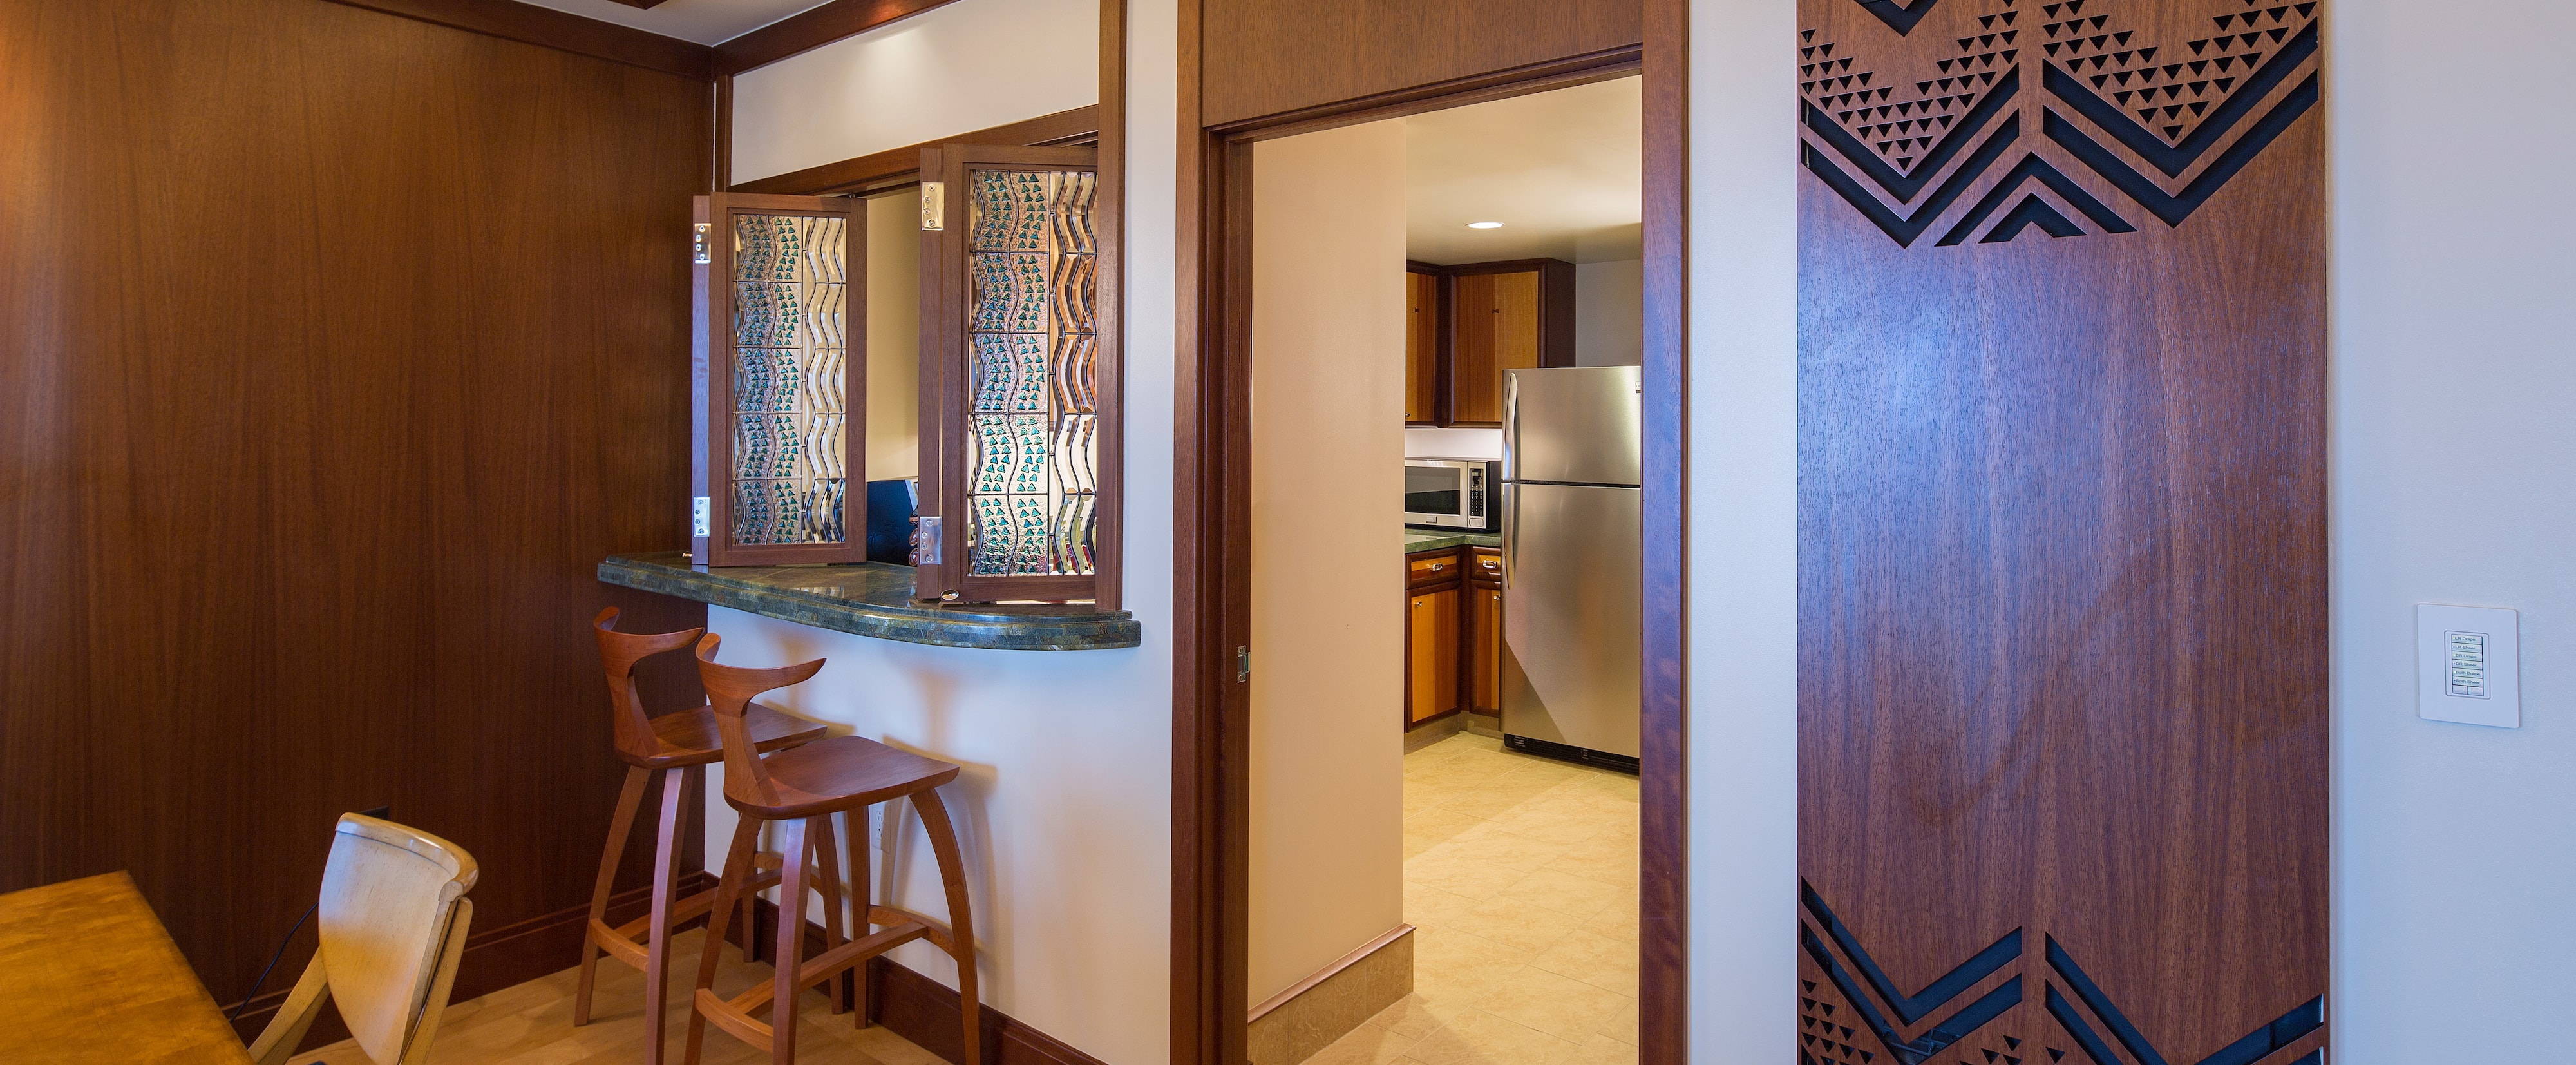 The breakfast bar in the Deluxe 1-Bedroom Suite